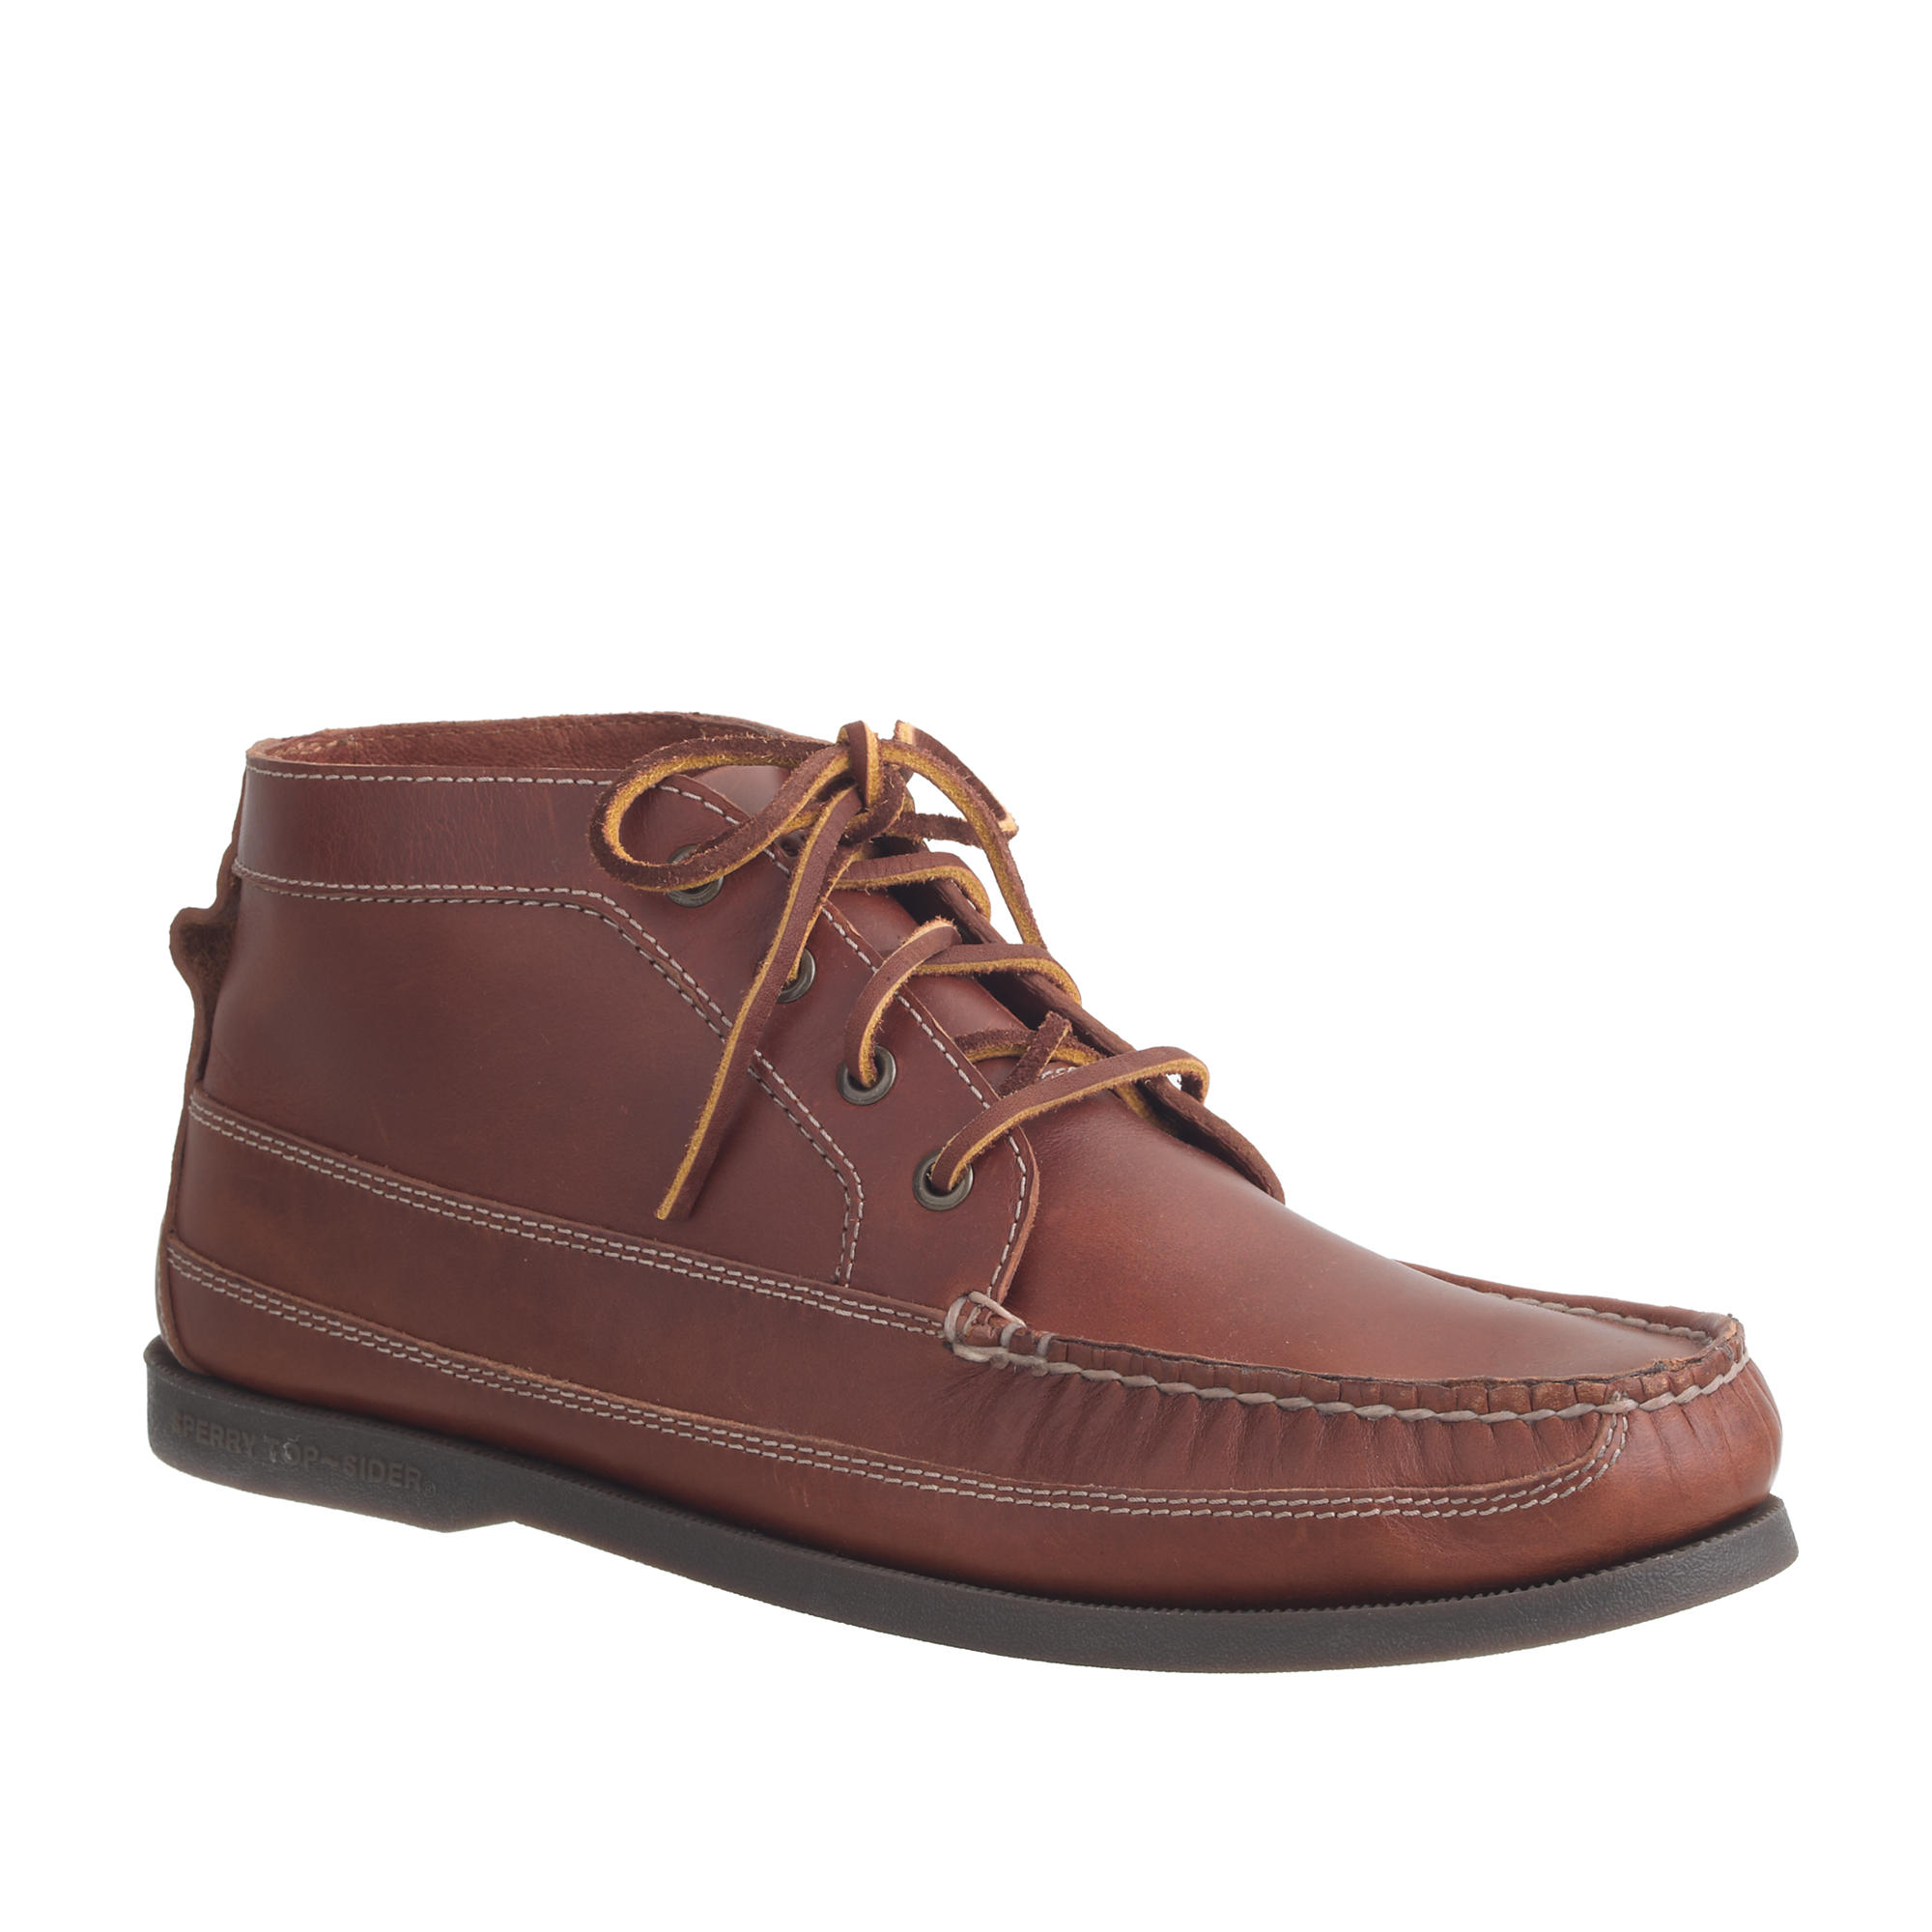 Sperry top-sider Men's Sperry Leather Chukka Boots in Brown for ...